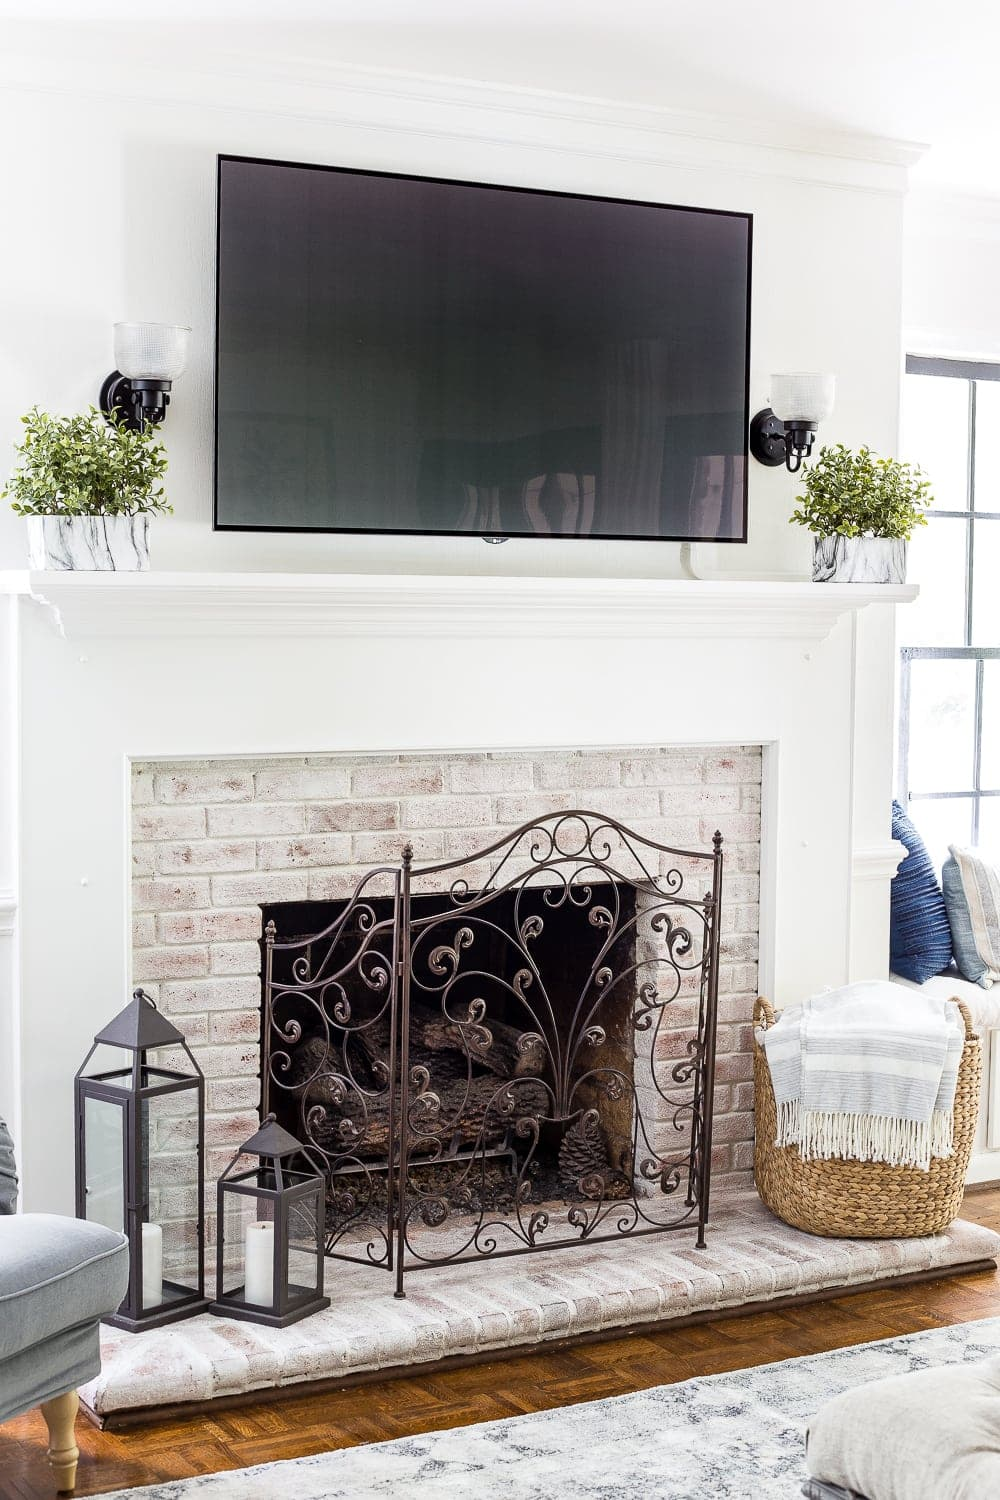 A list of decorating solutions to hide and blend your television to make it work beautifully in any room.